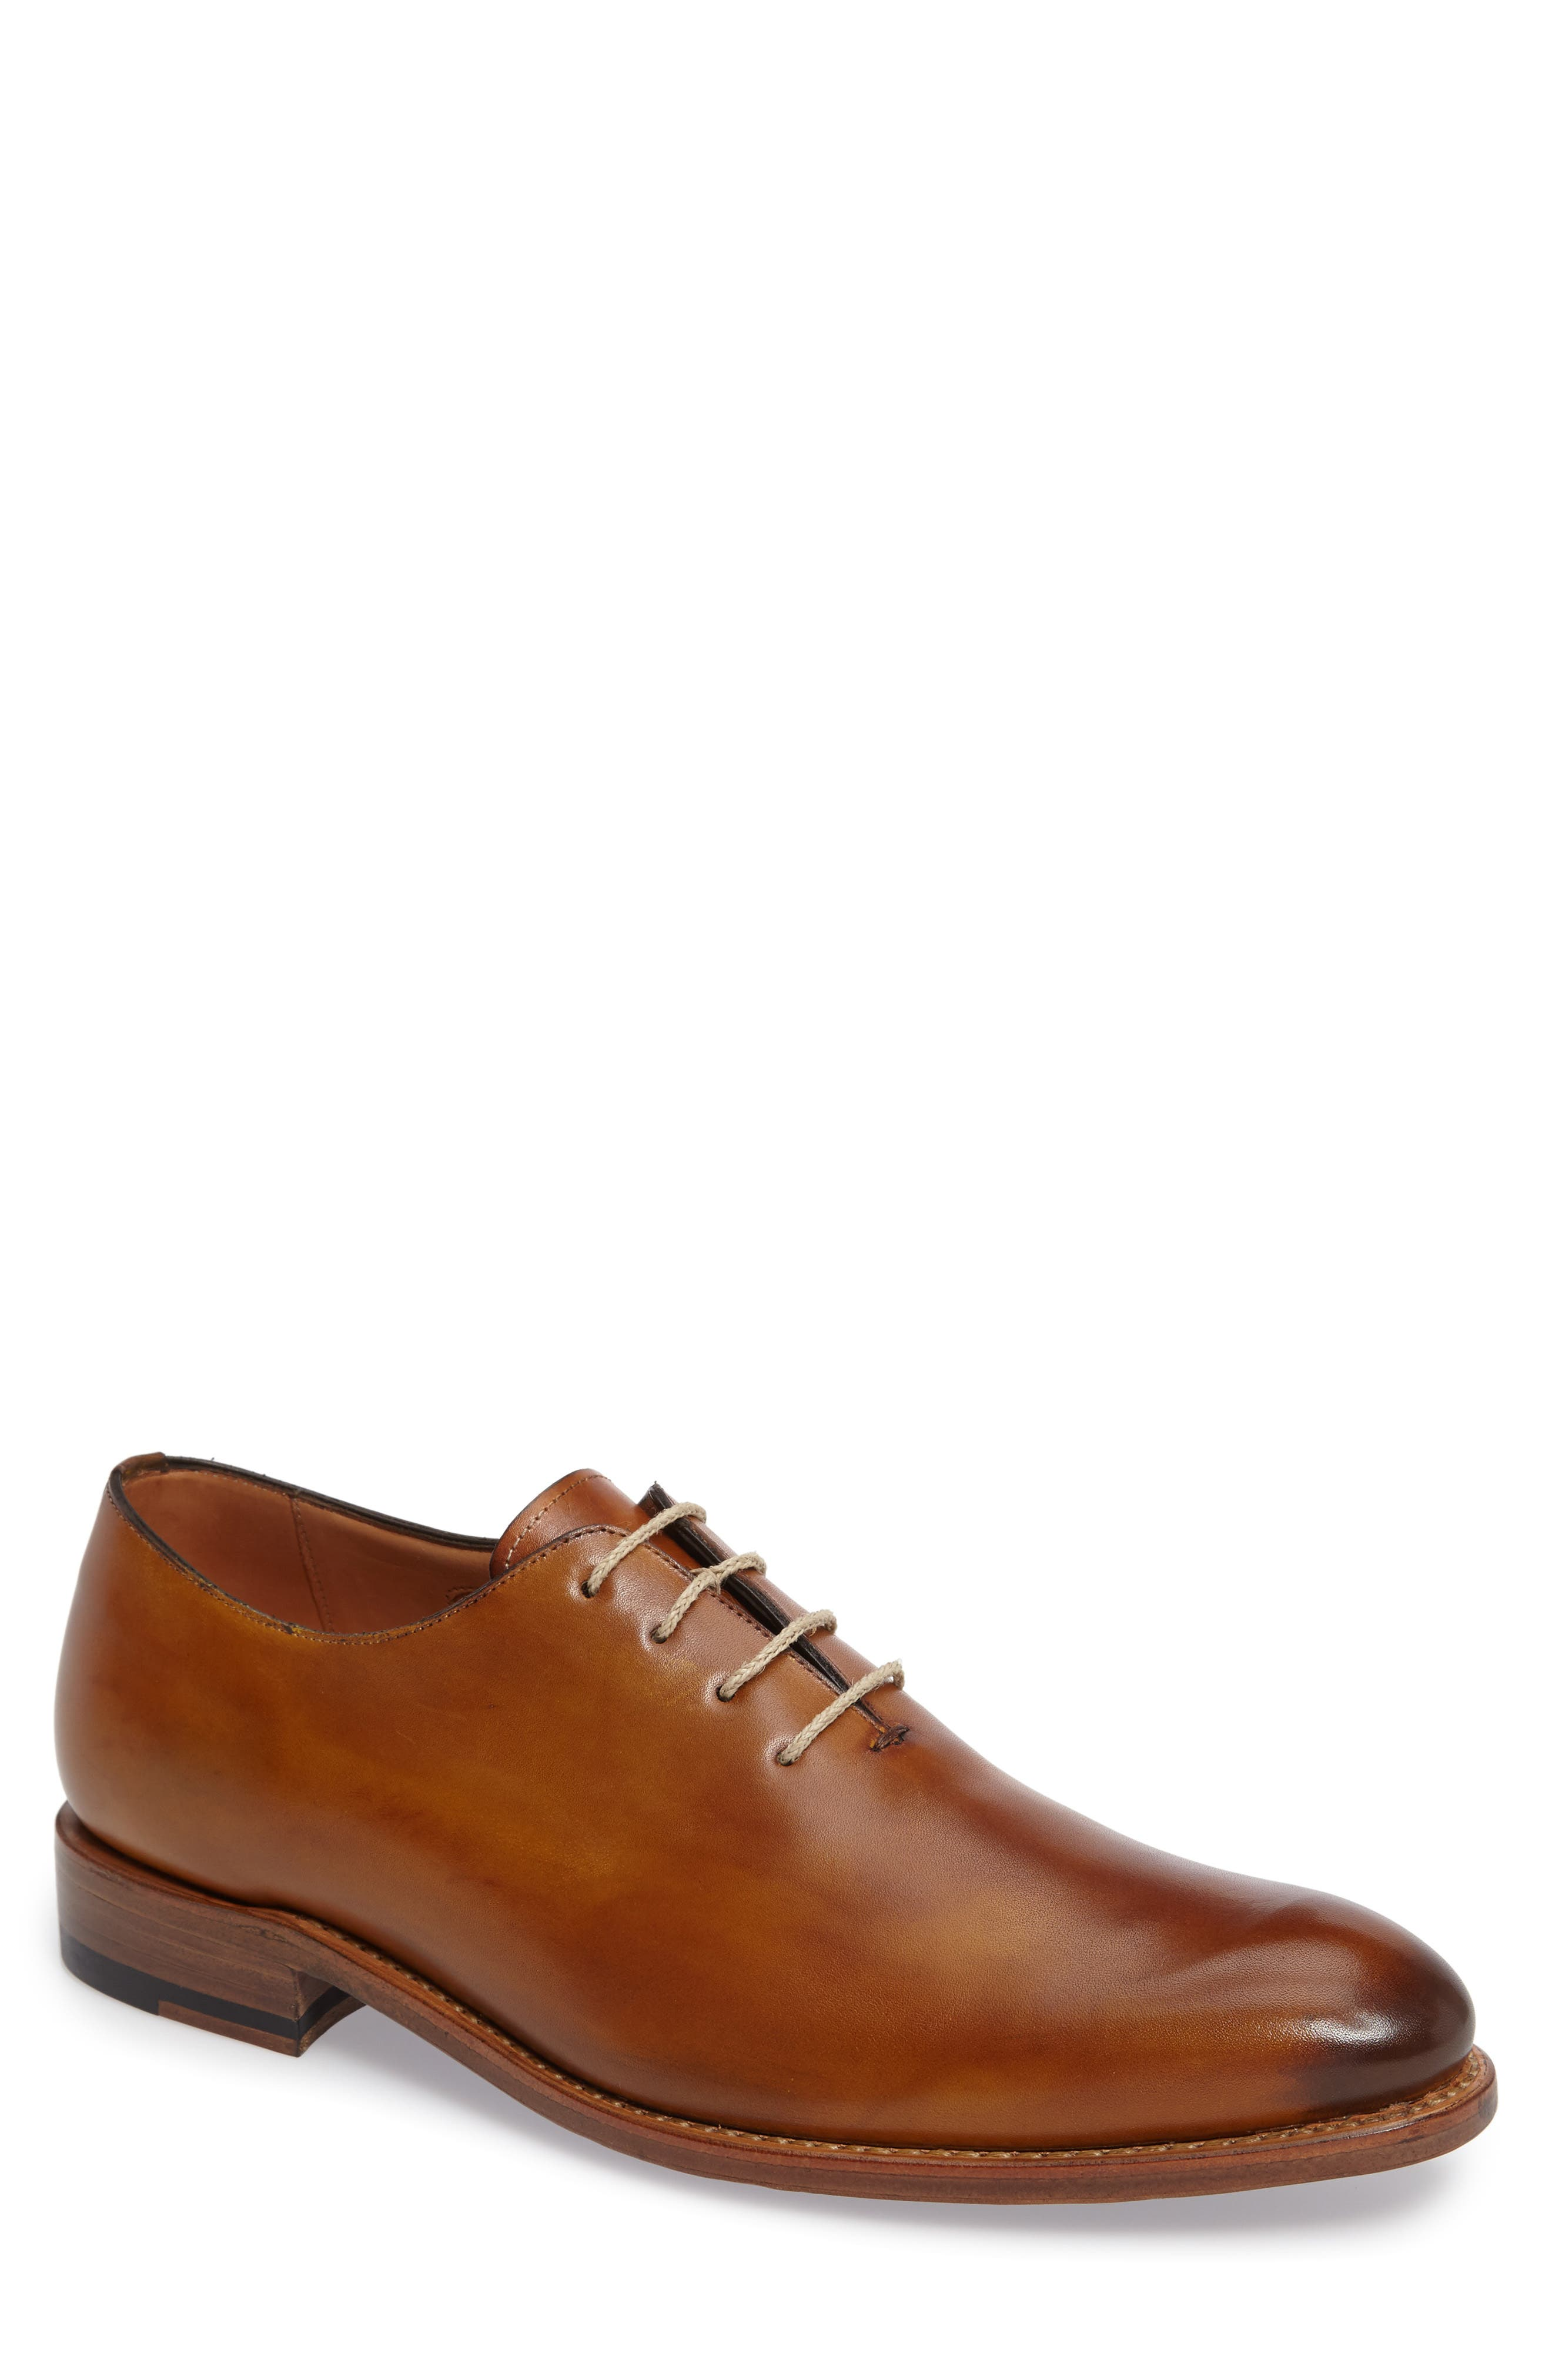 by Mezlan G105 Plain Toe Derby,                             Main thumbnail 1, color,                             Tan